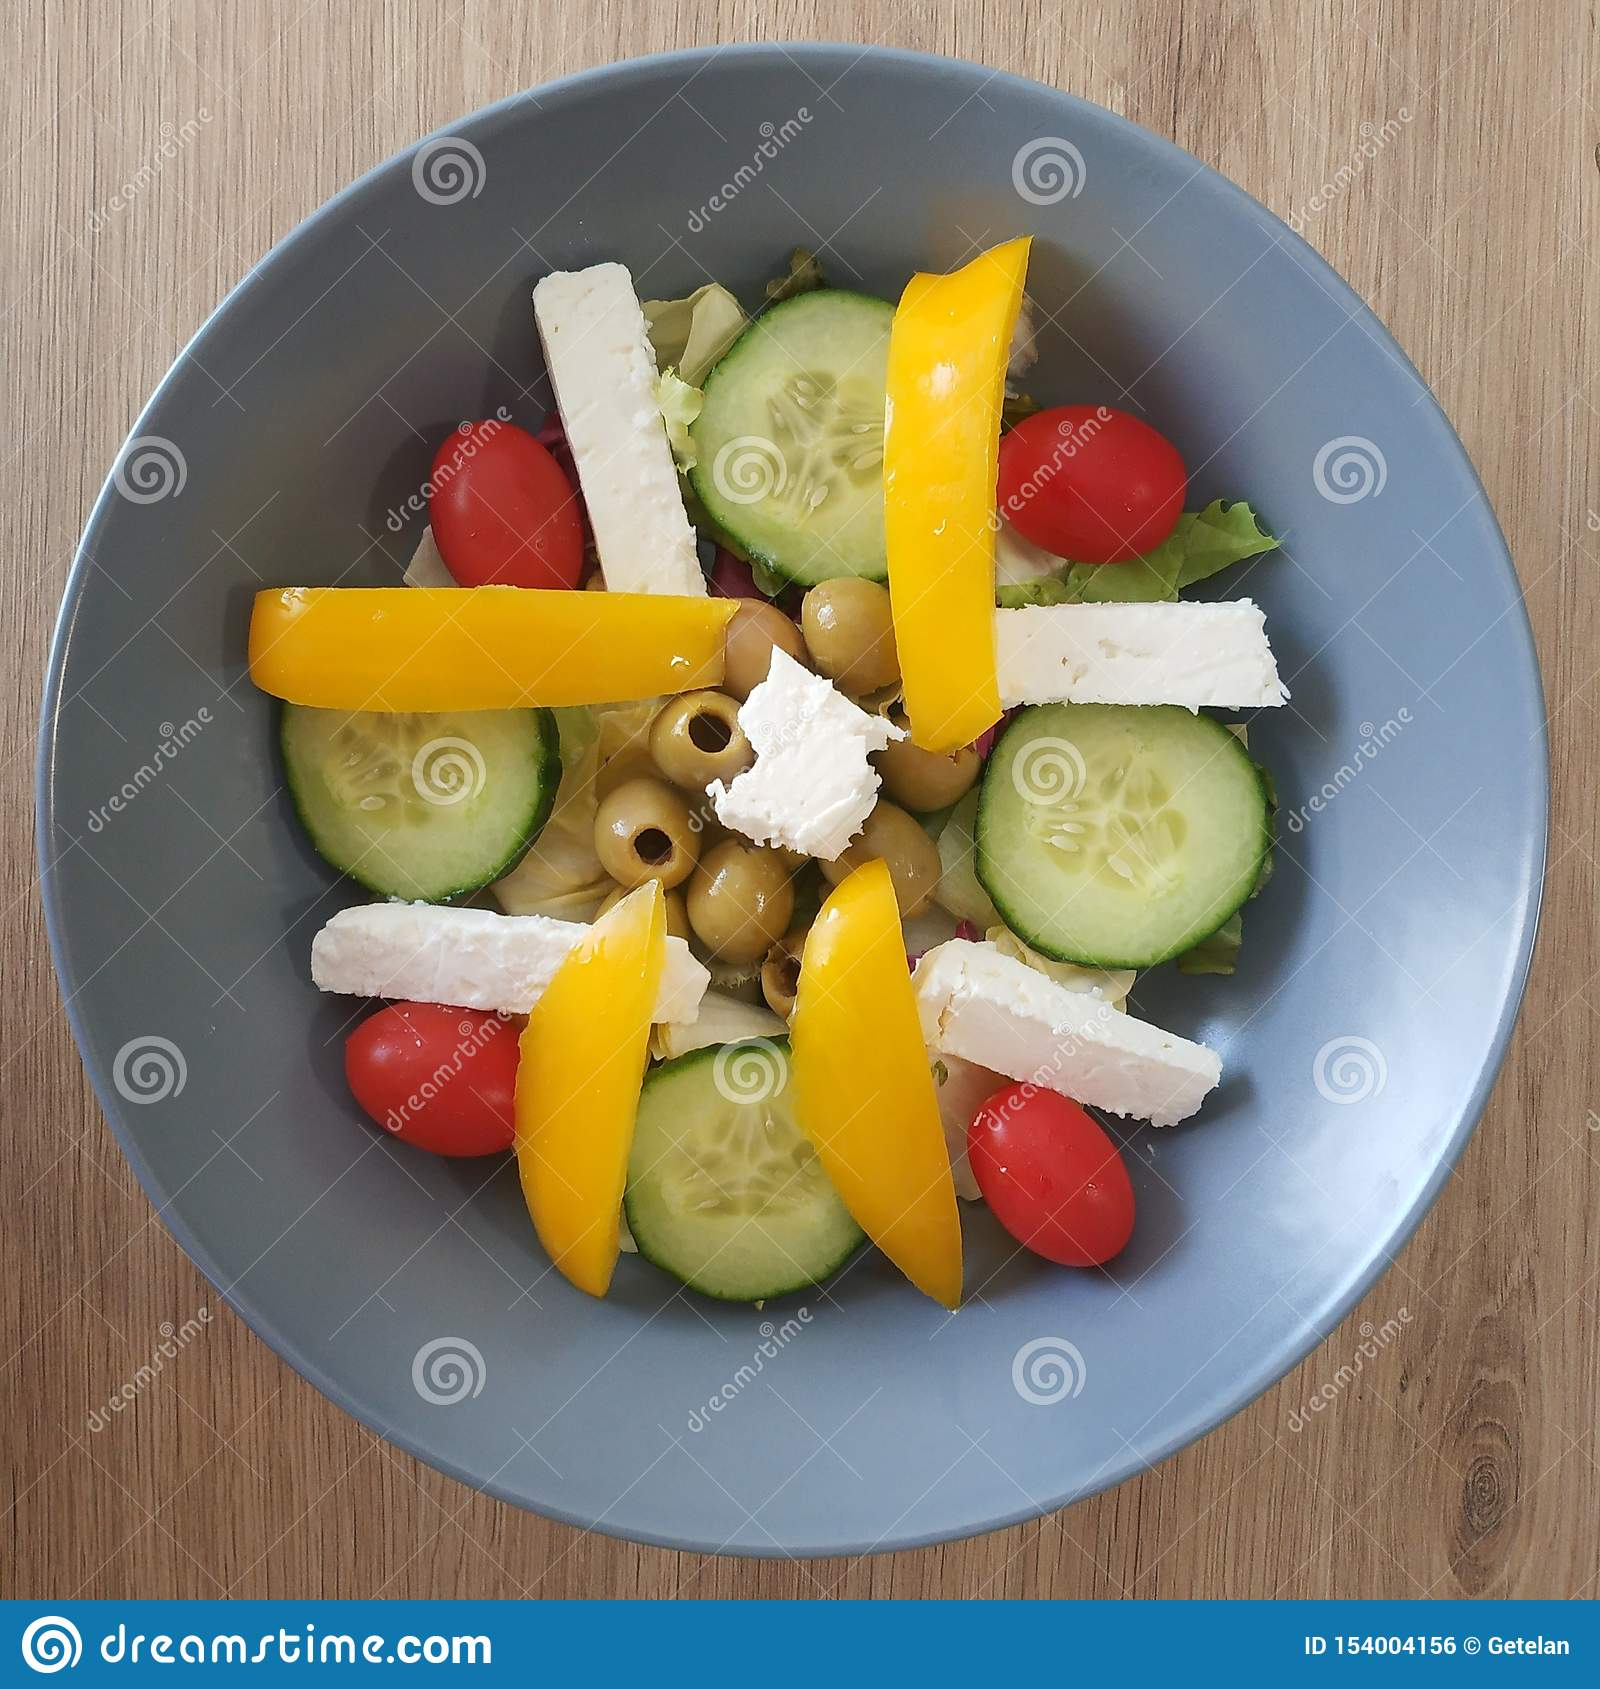 Ketogenic meal, feta cheese salad with tomato, cucumber, olive, bell pepper. Keto food for weight loss. Healthy diet breakfast